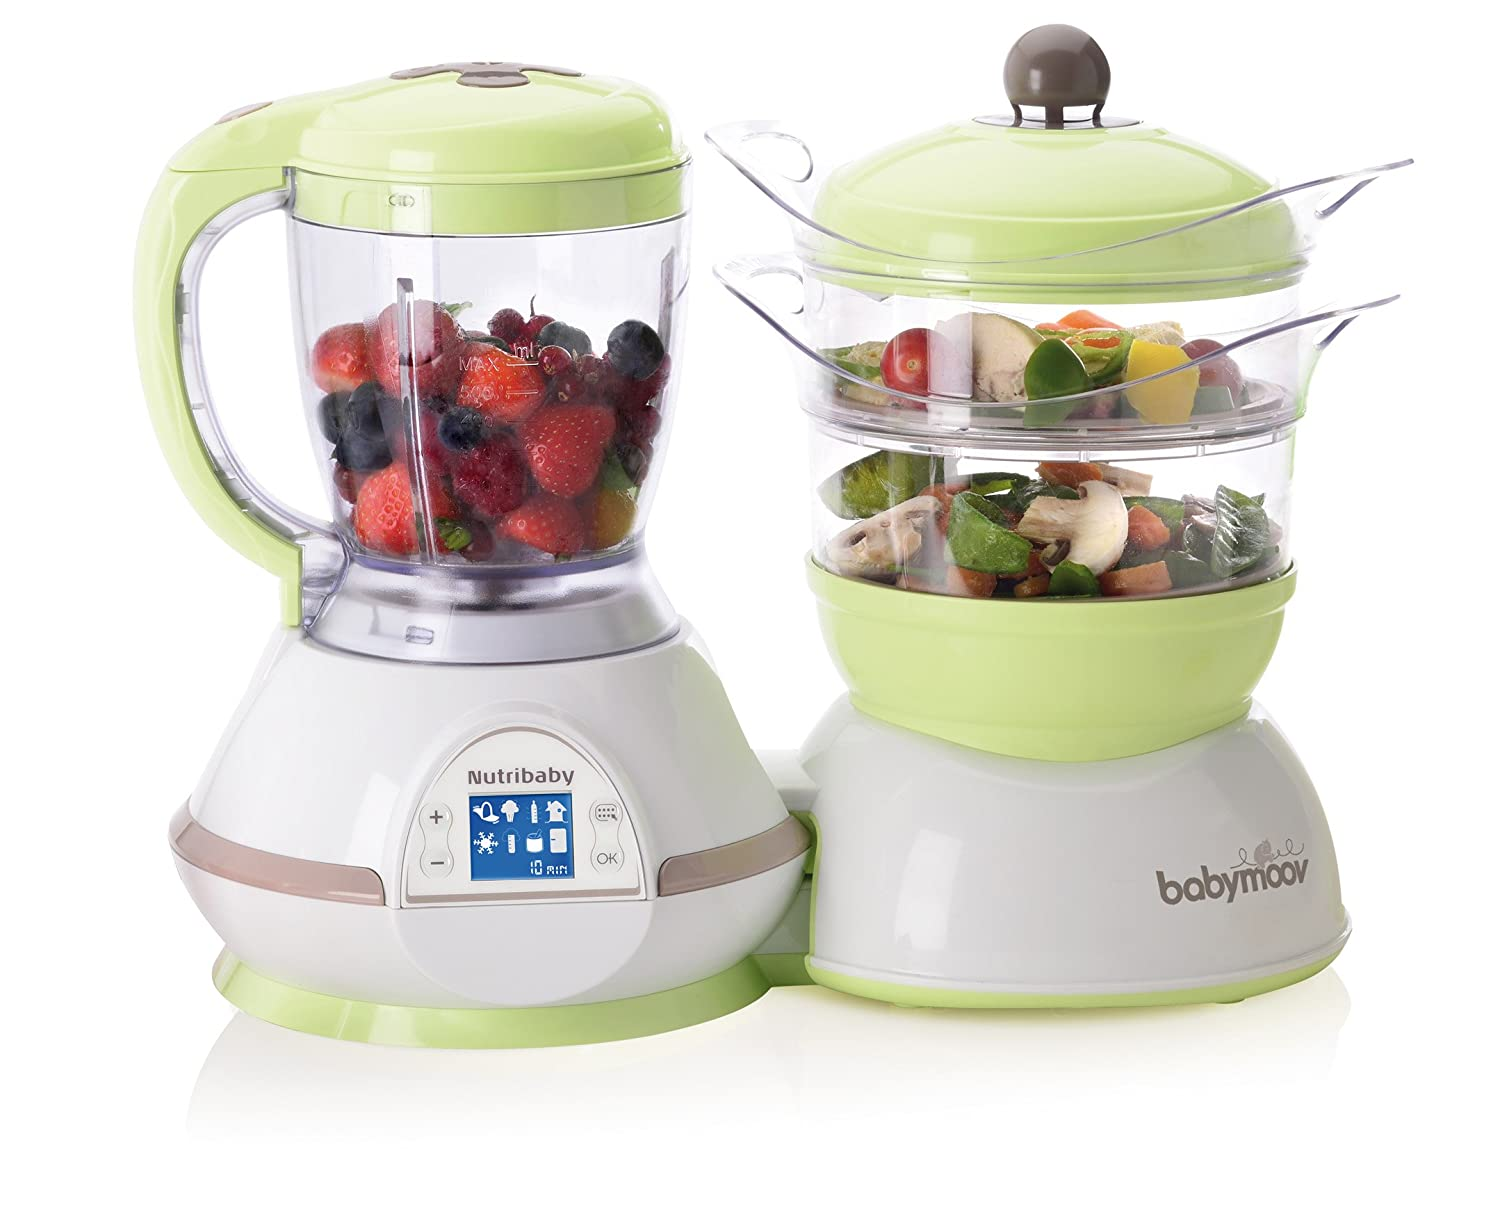 Babymoov Food Processor Nutribaby Zen Healthcenter A001100_UK